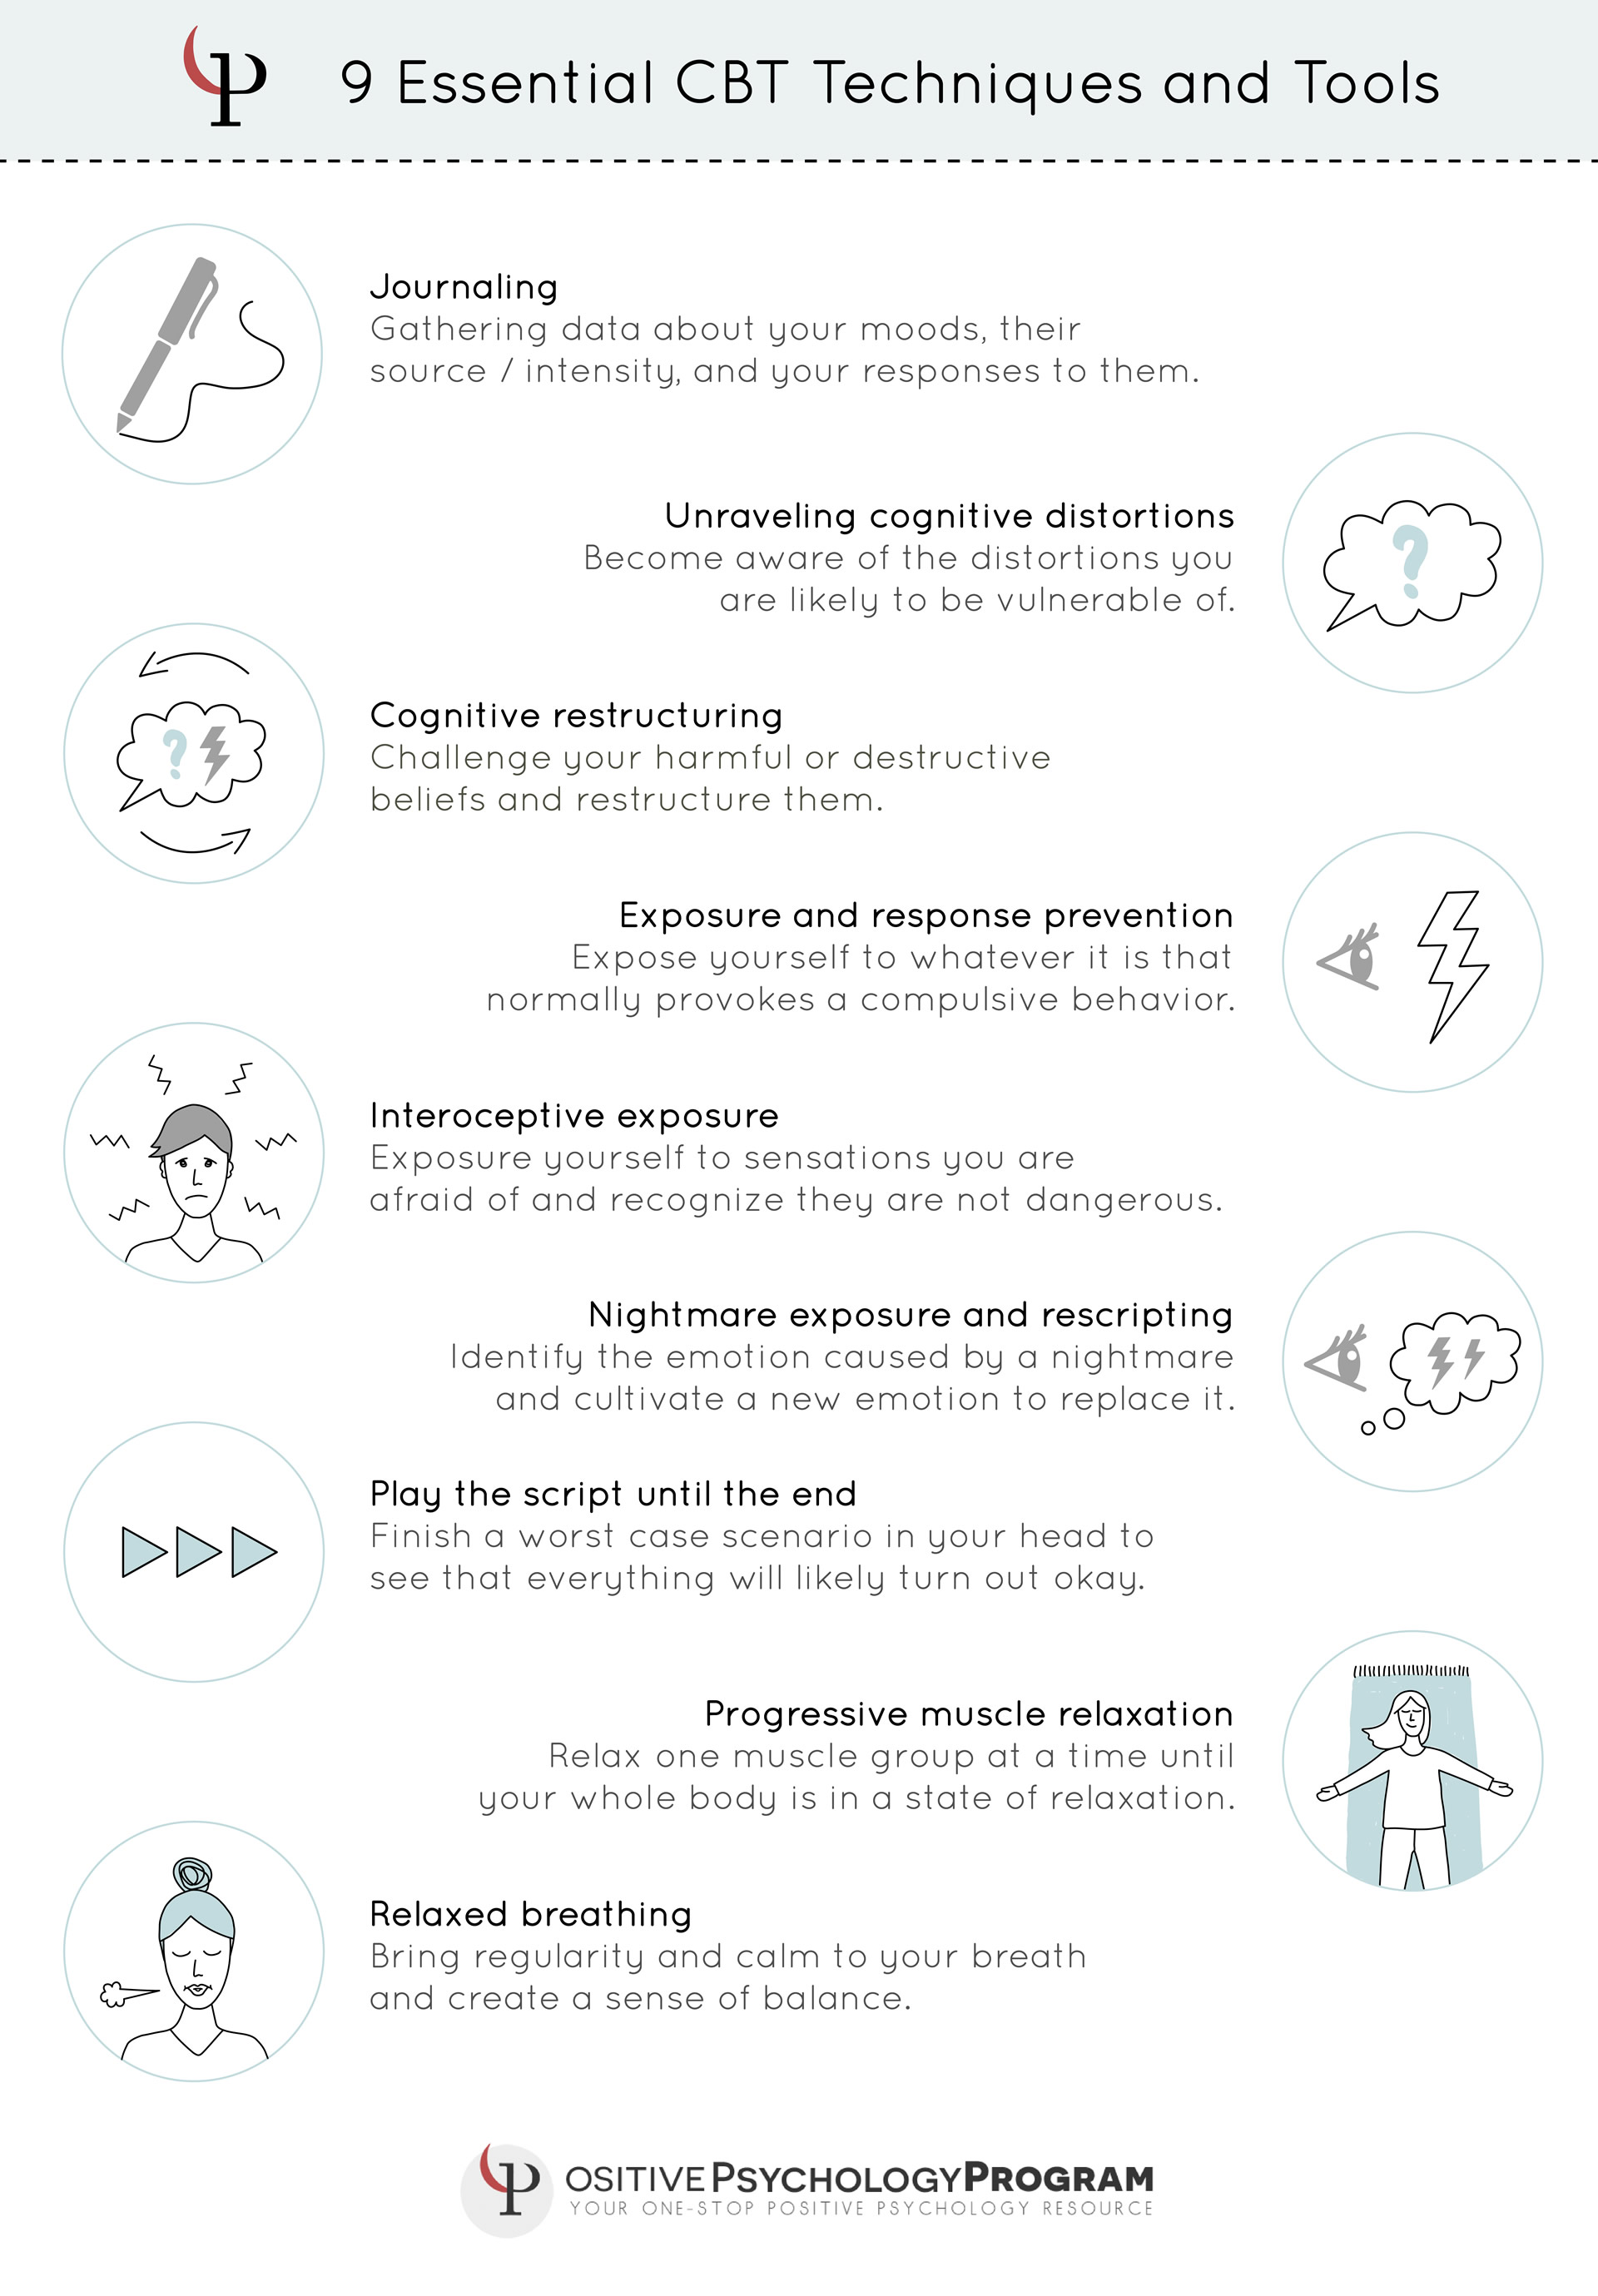 worksheet Core Beliefs Worksheet 25 cbt techniques and worksheets for cognitive behavioral therapy 9 essential tools infographic